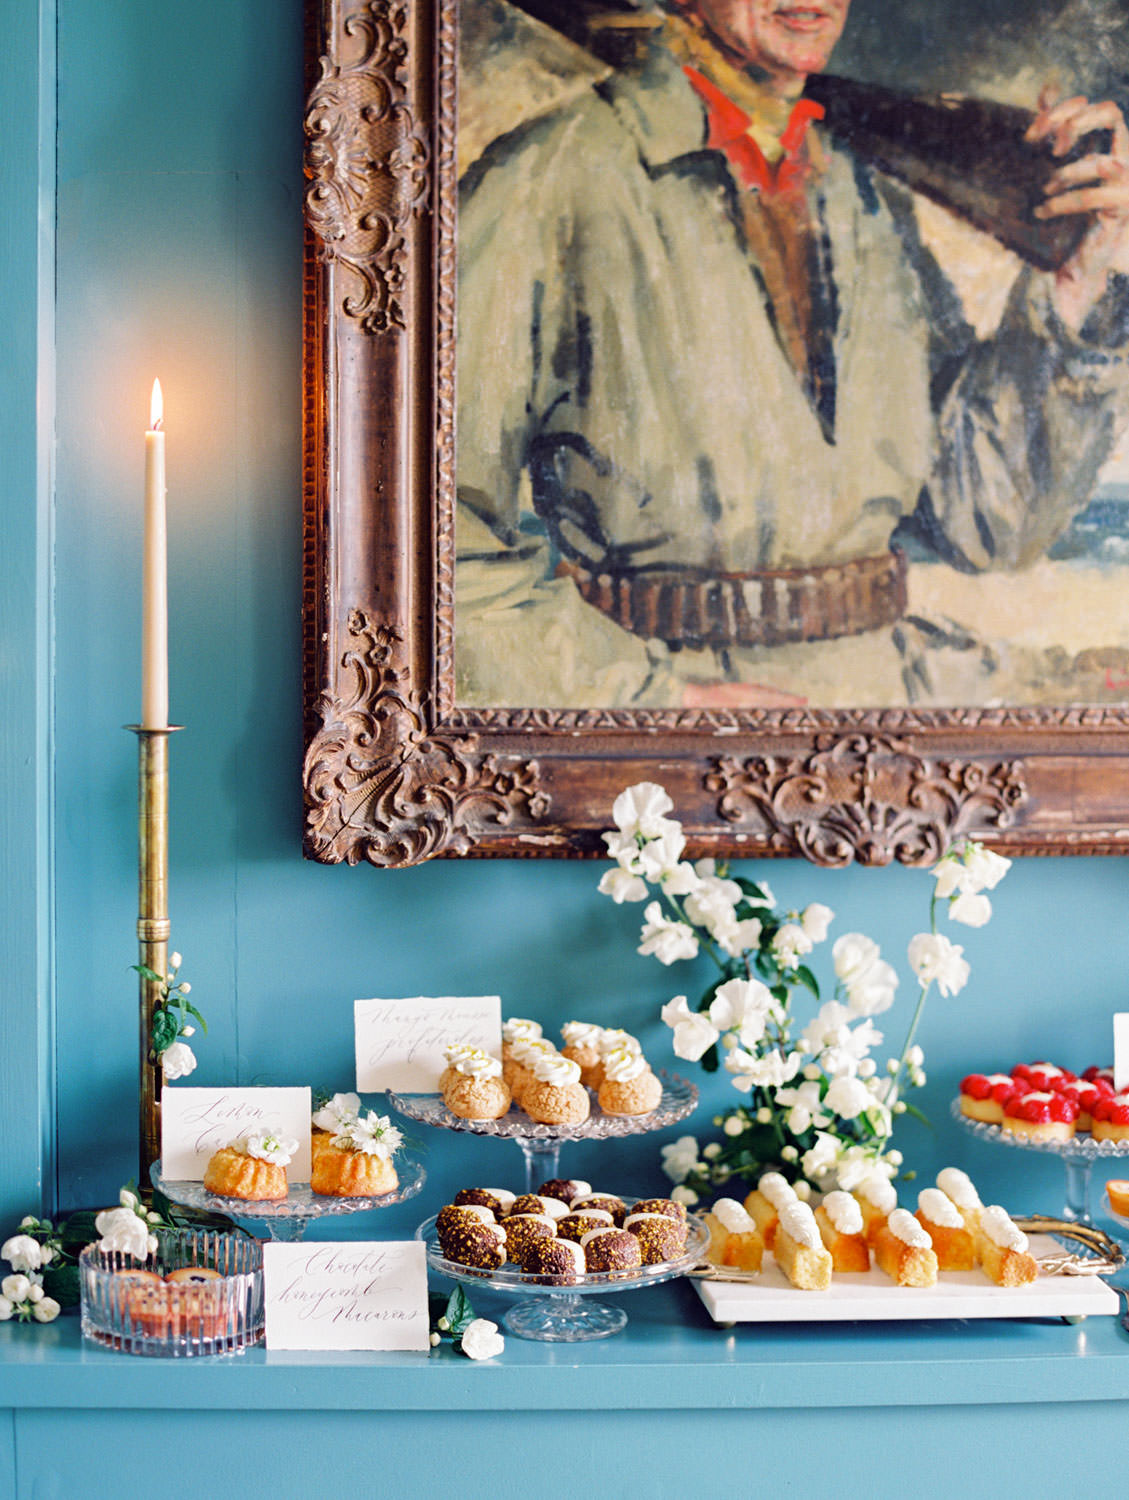 MonAnnie desserts styled by Joy Proctor. Flutter Magazine Retreat in the Cotswolds at Norton Hall in Mickleton, England. Photo by Cavin Elizabeth Photography on film